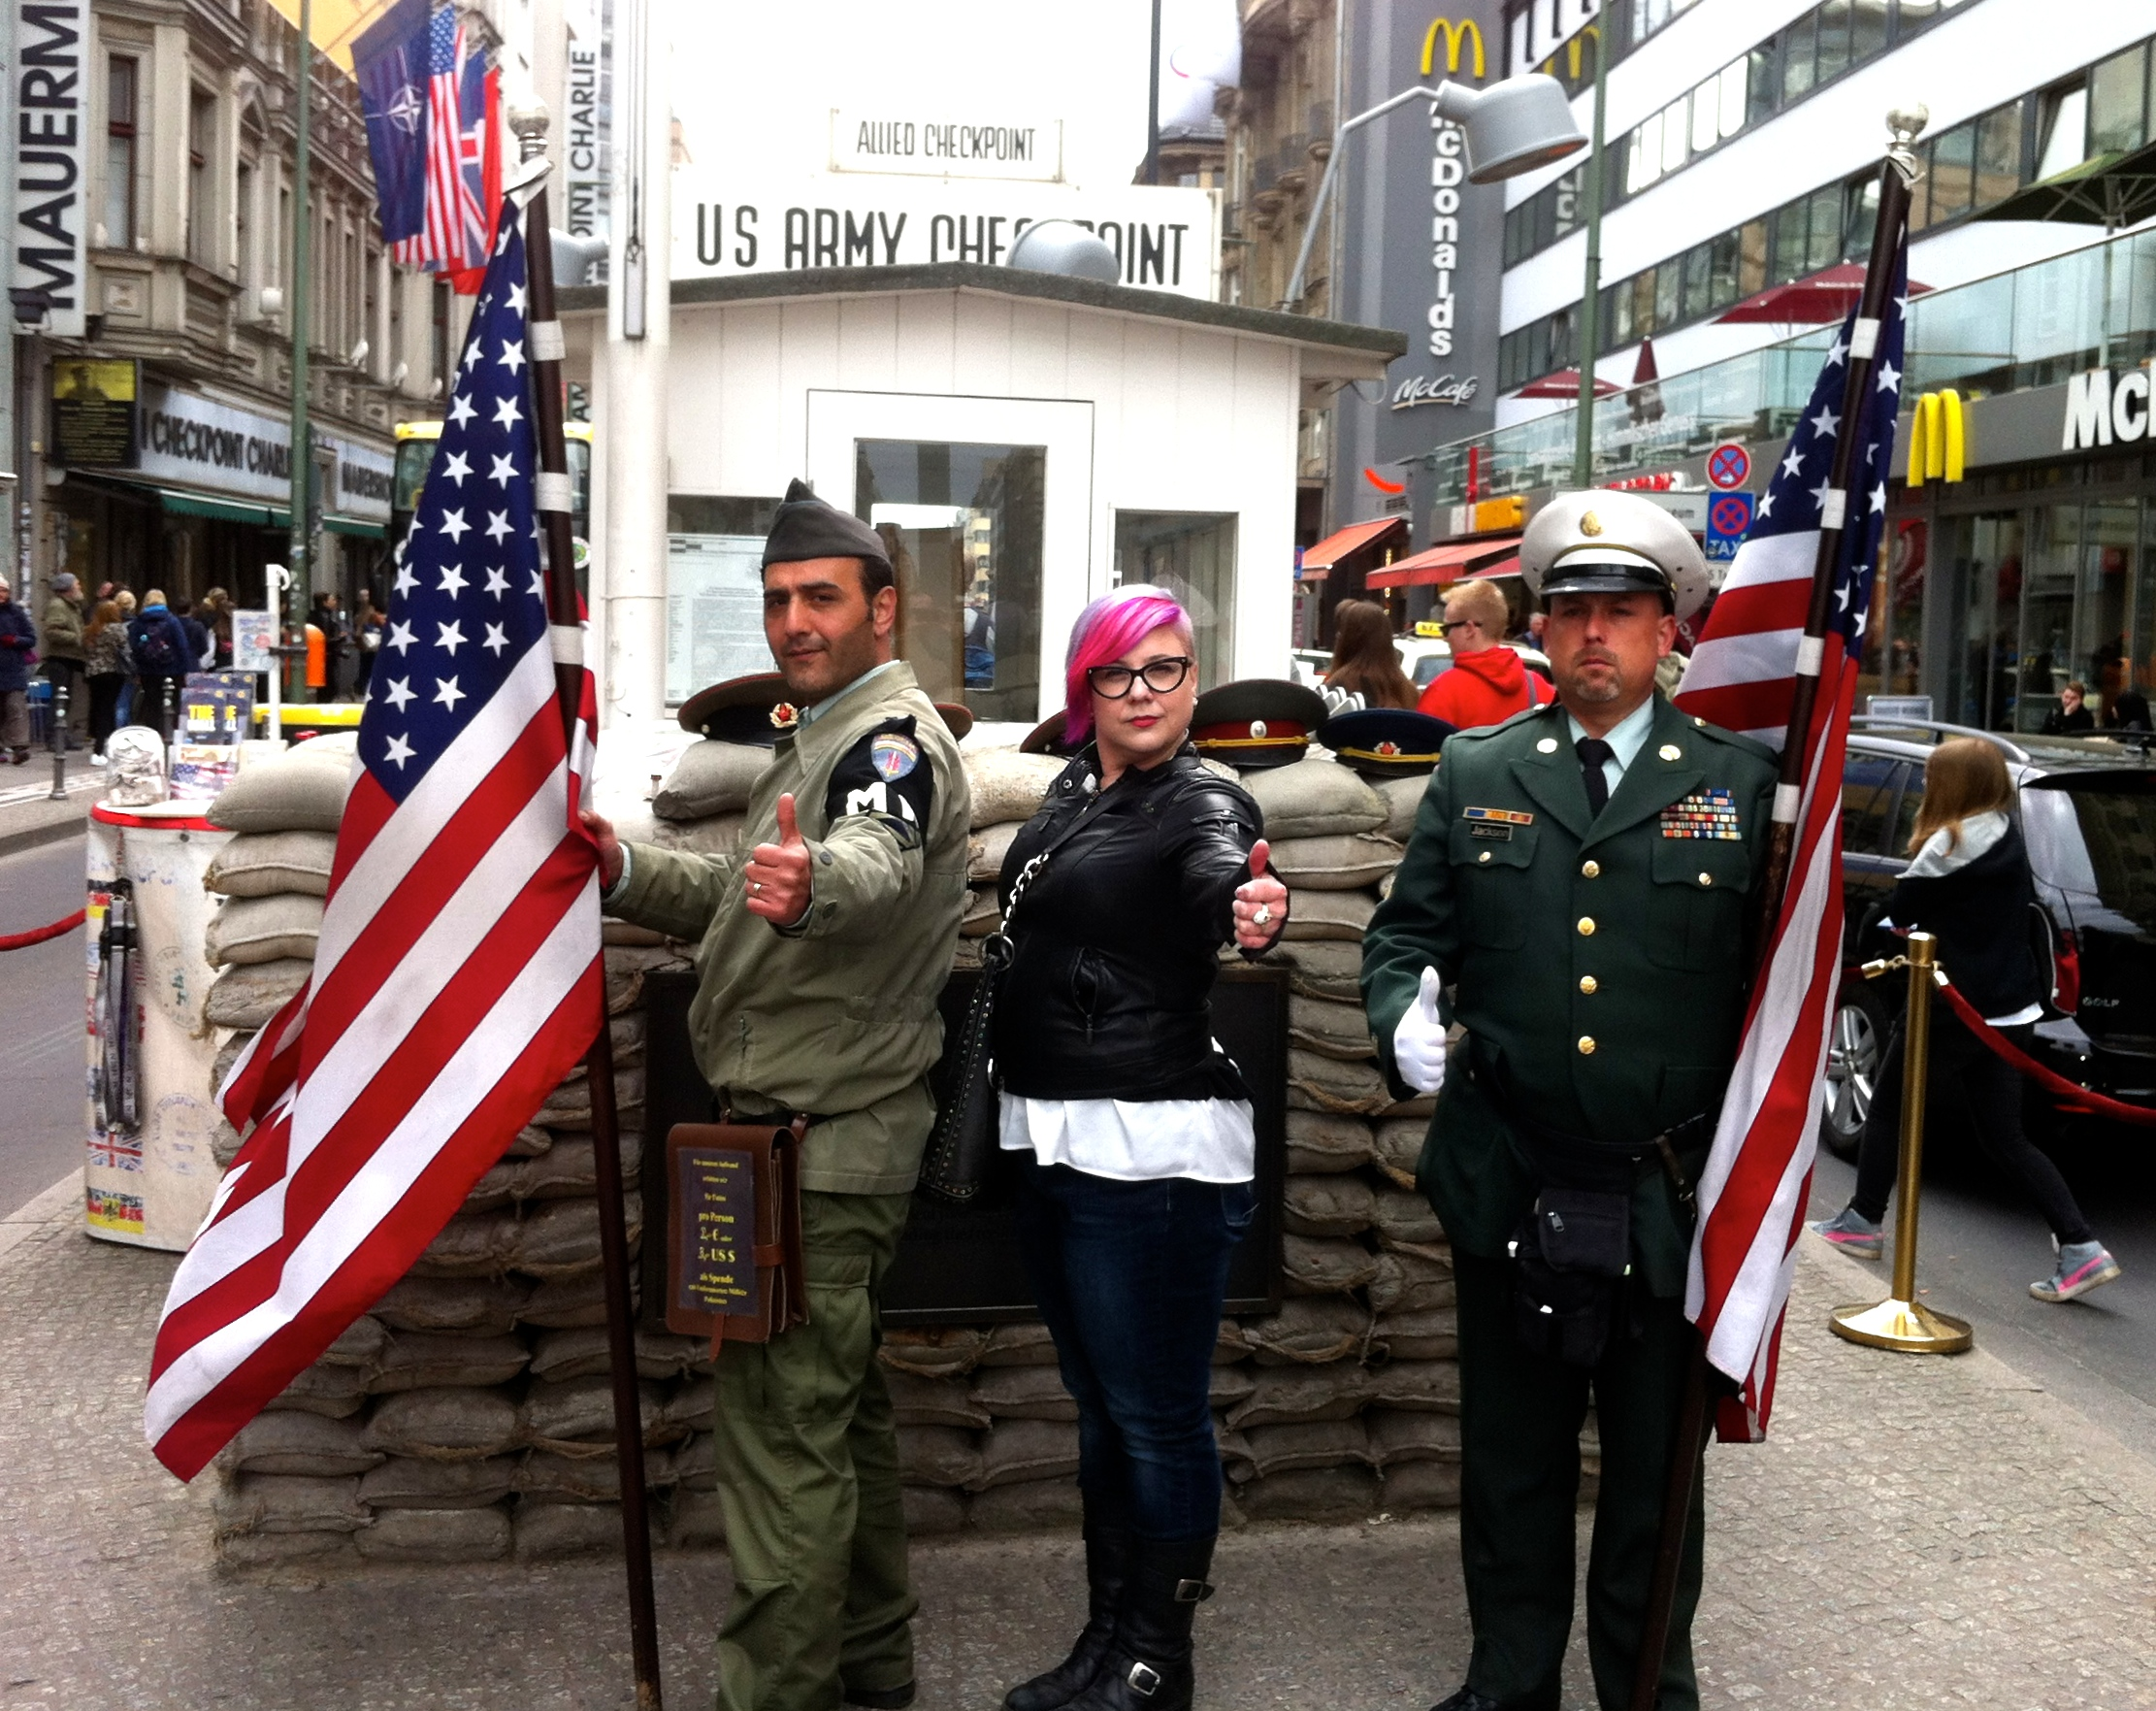 berlin sites checkpoint charlie museum photos. Black Bedroom Furniture Sets. Home Design Ideas